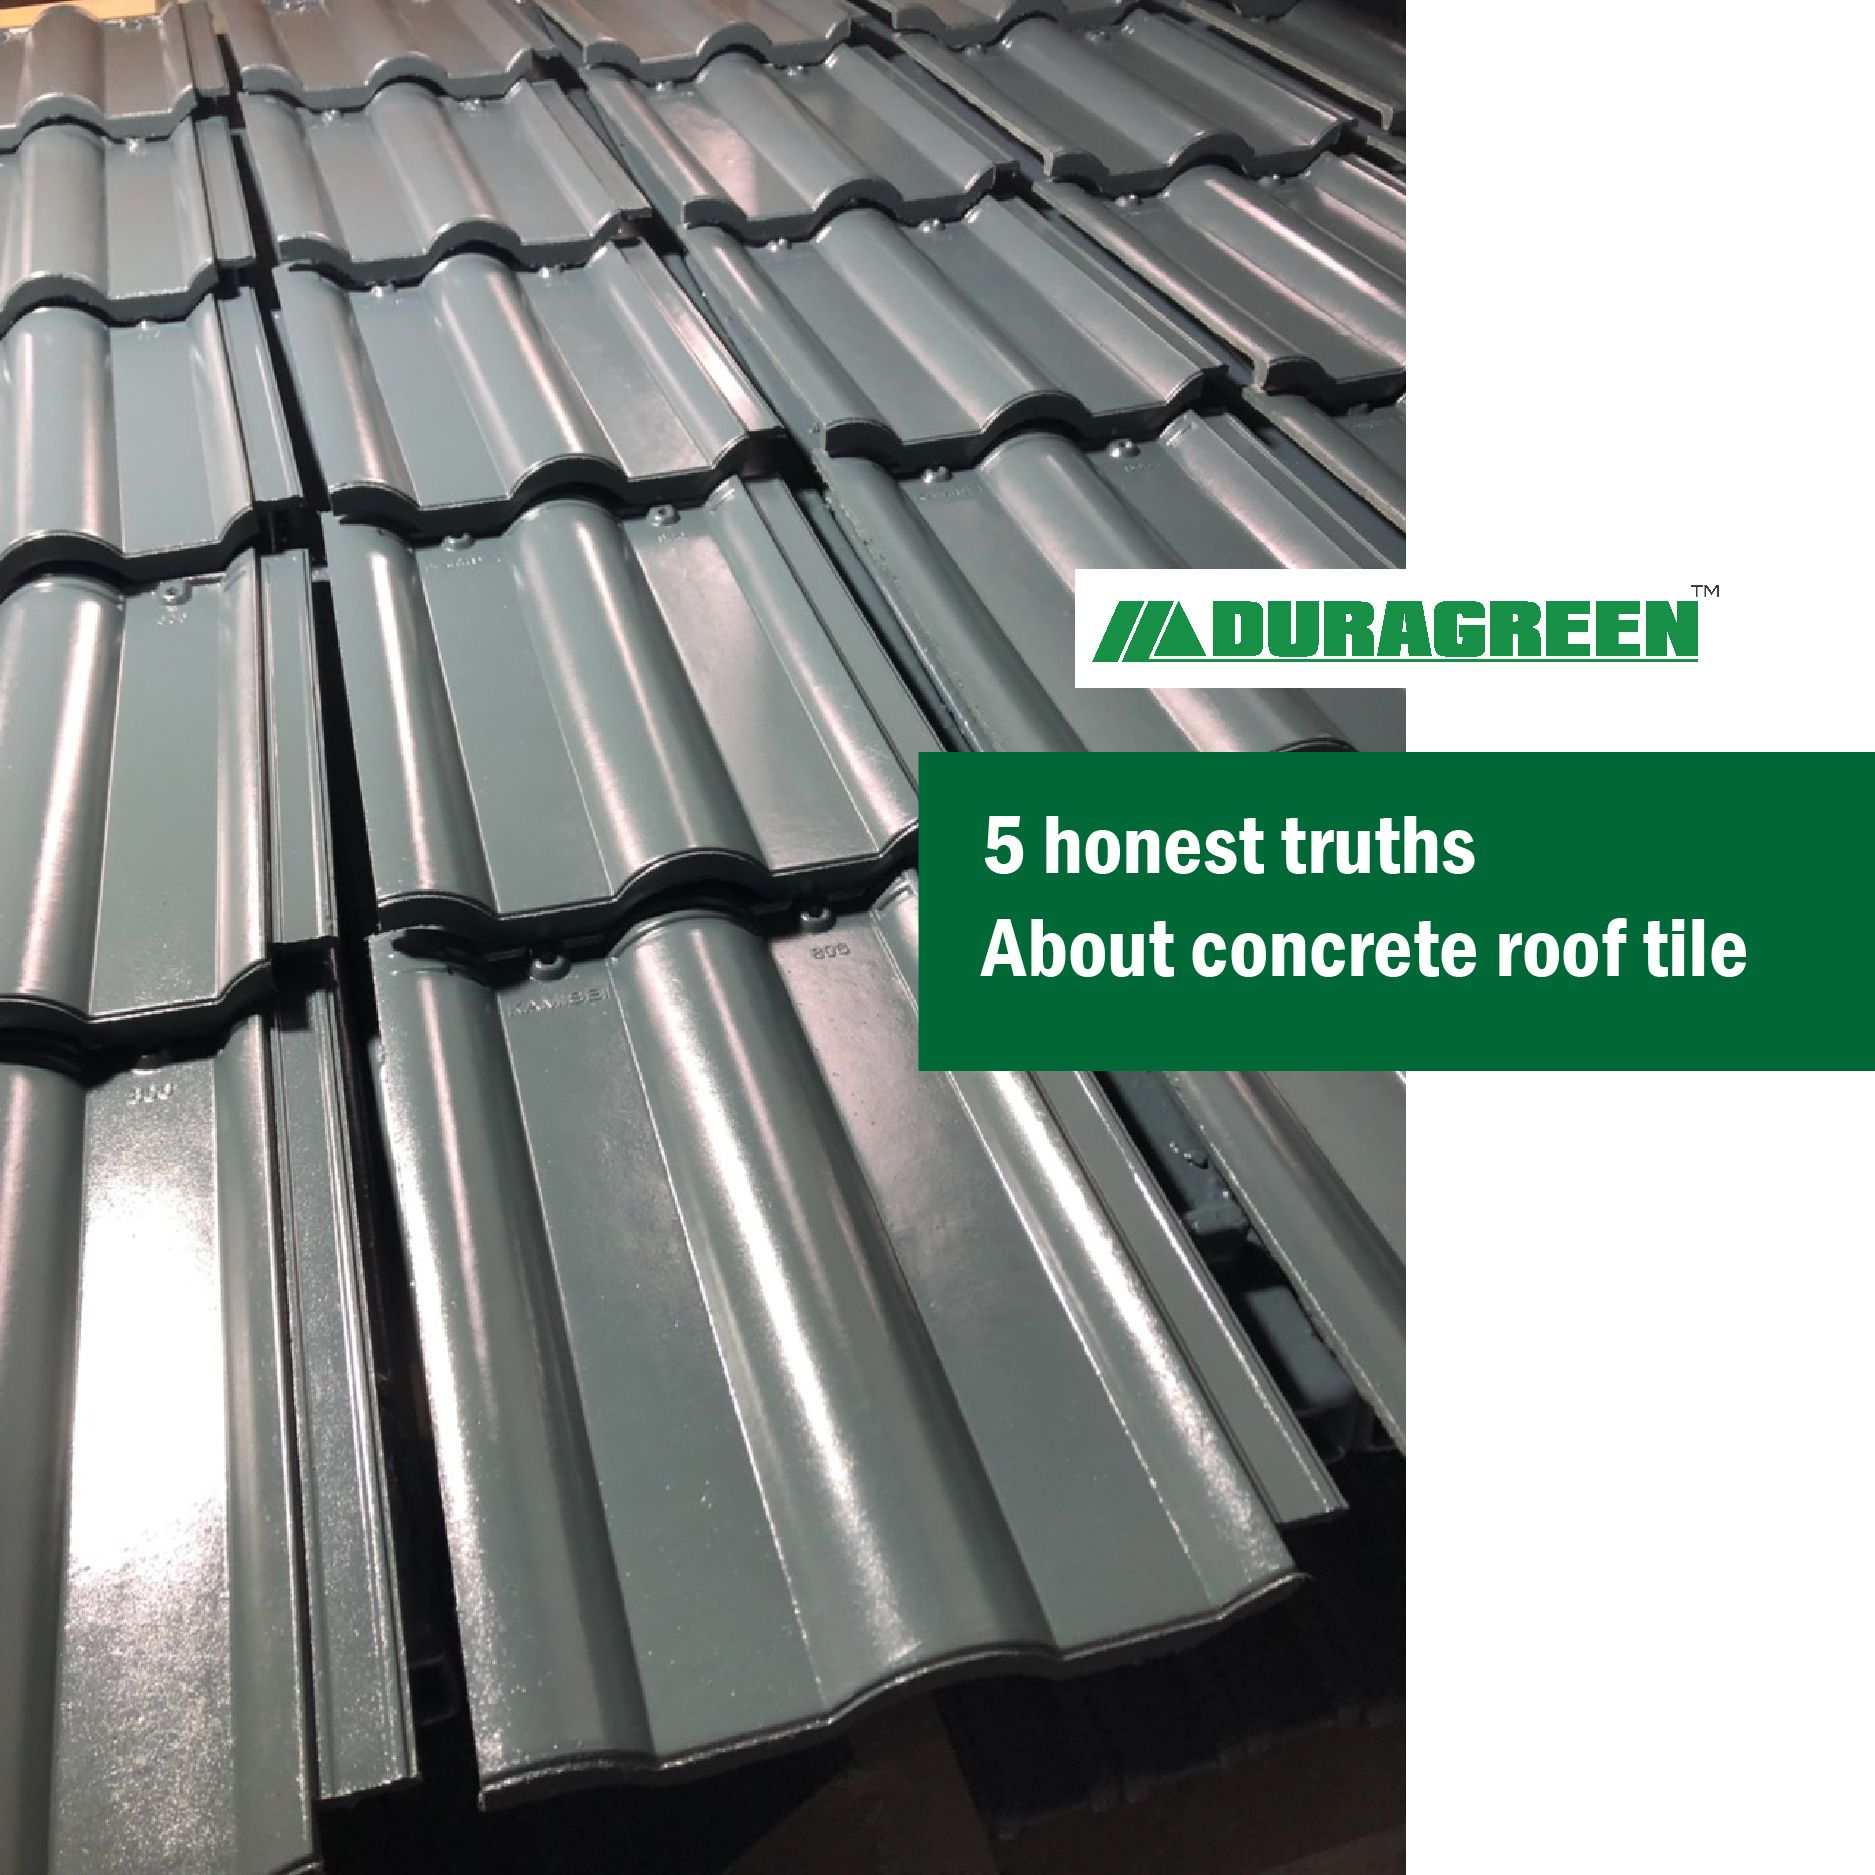 5 Honest Truths About Concrete Roof Tiles In 2020 Concrete Roof Tiles Concrete Roof Roof Tiles